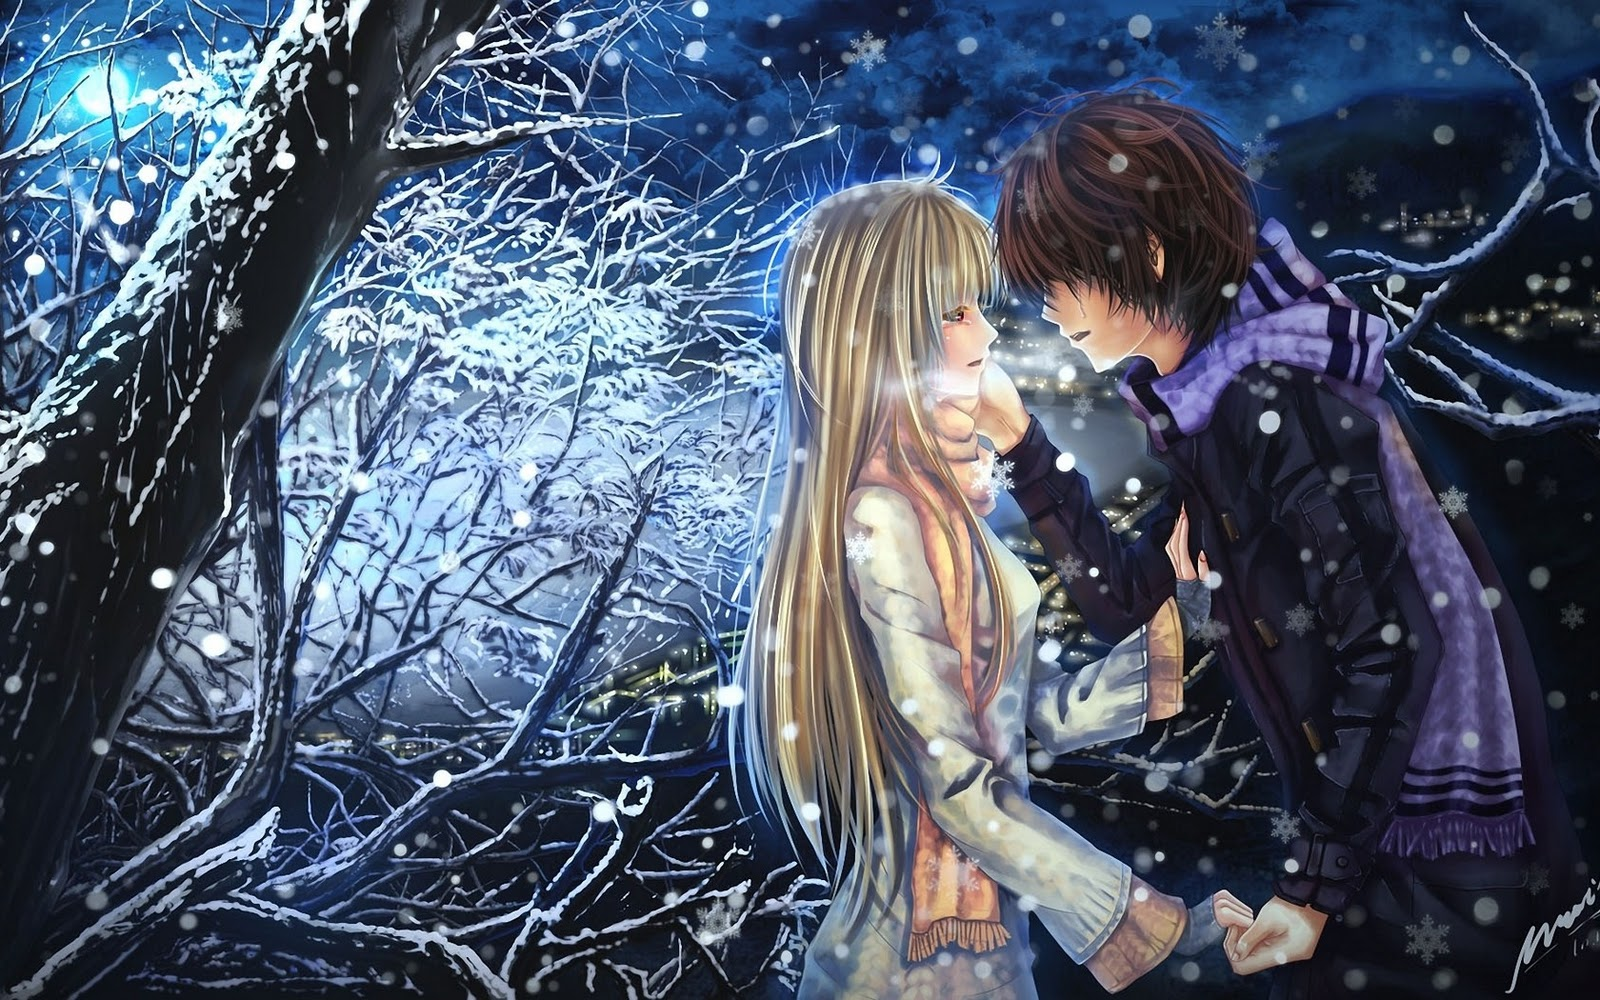 Love Hot couple Hd Wallpaper : A2Z Wallpapers: Anime couples In Love Wallpapers